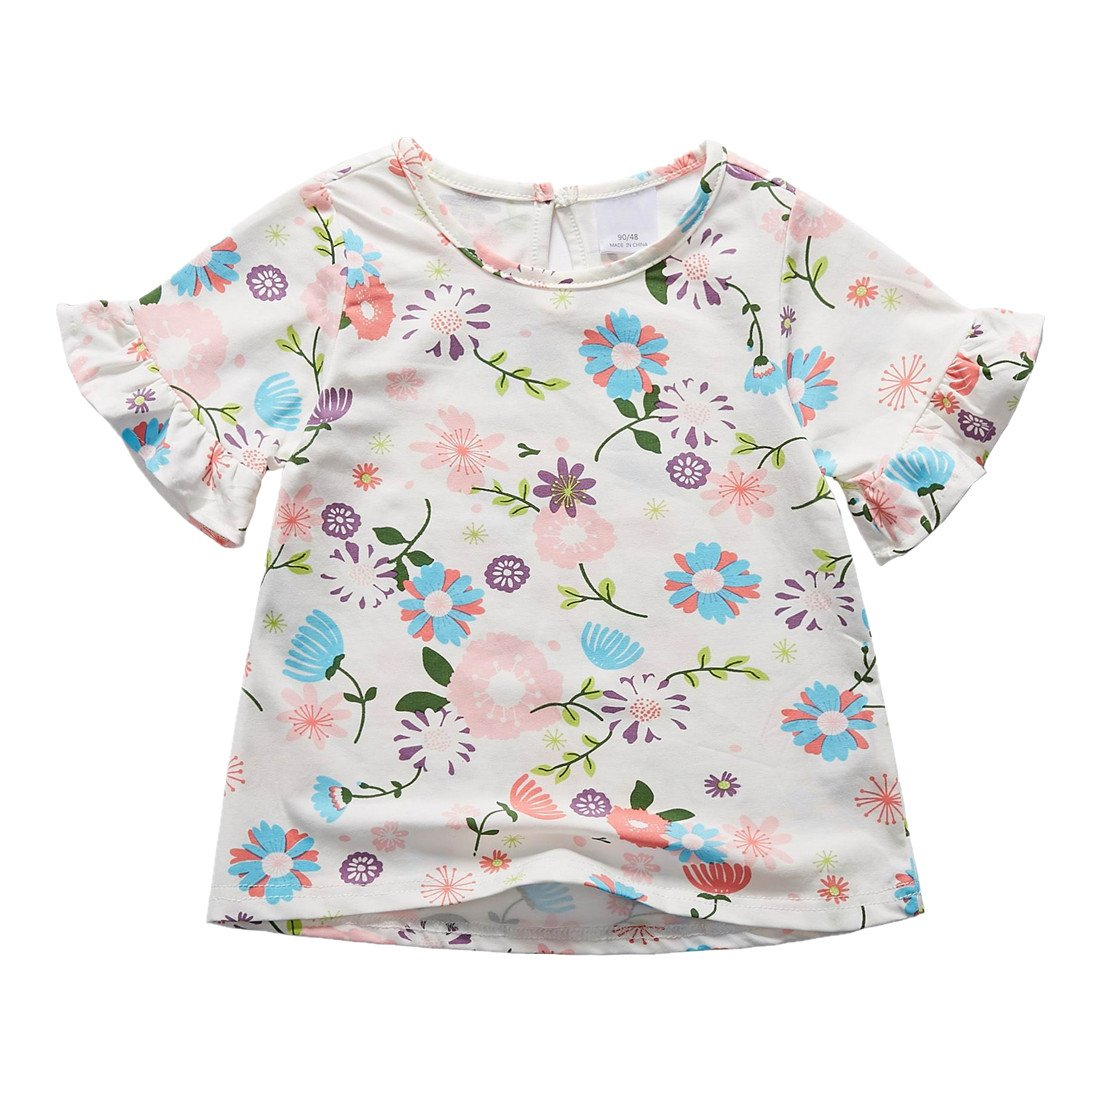 Sooxiwood Little Girls T-Shirt Top Flower Summer Size 2T Style-B